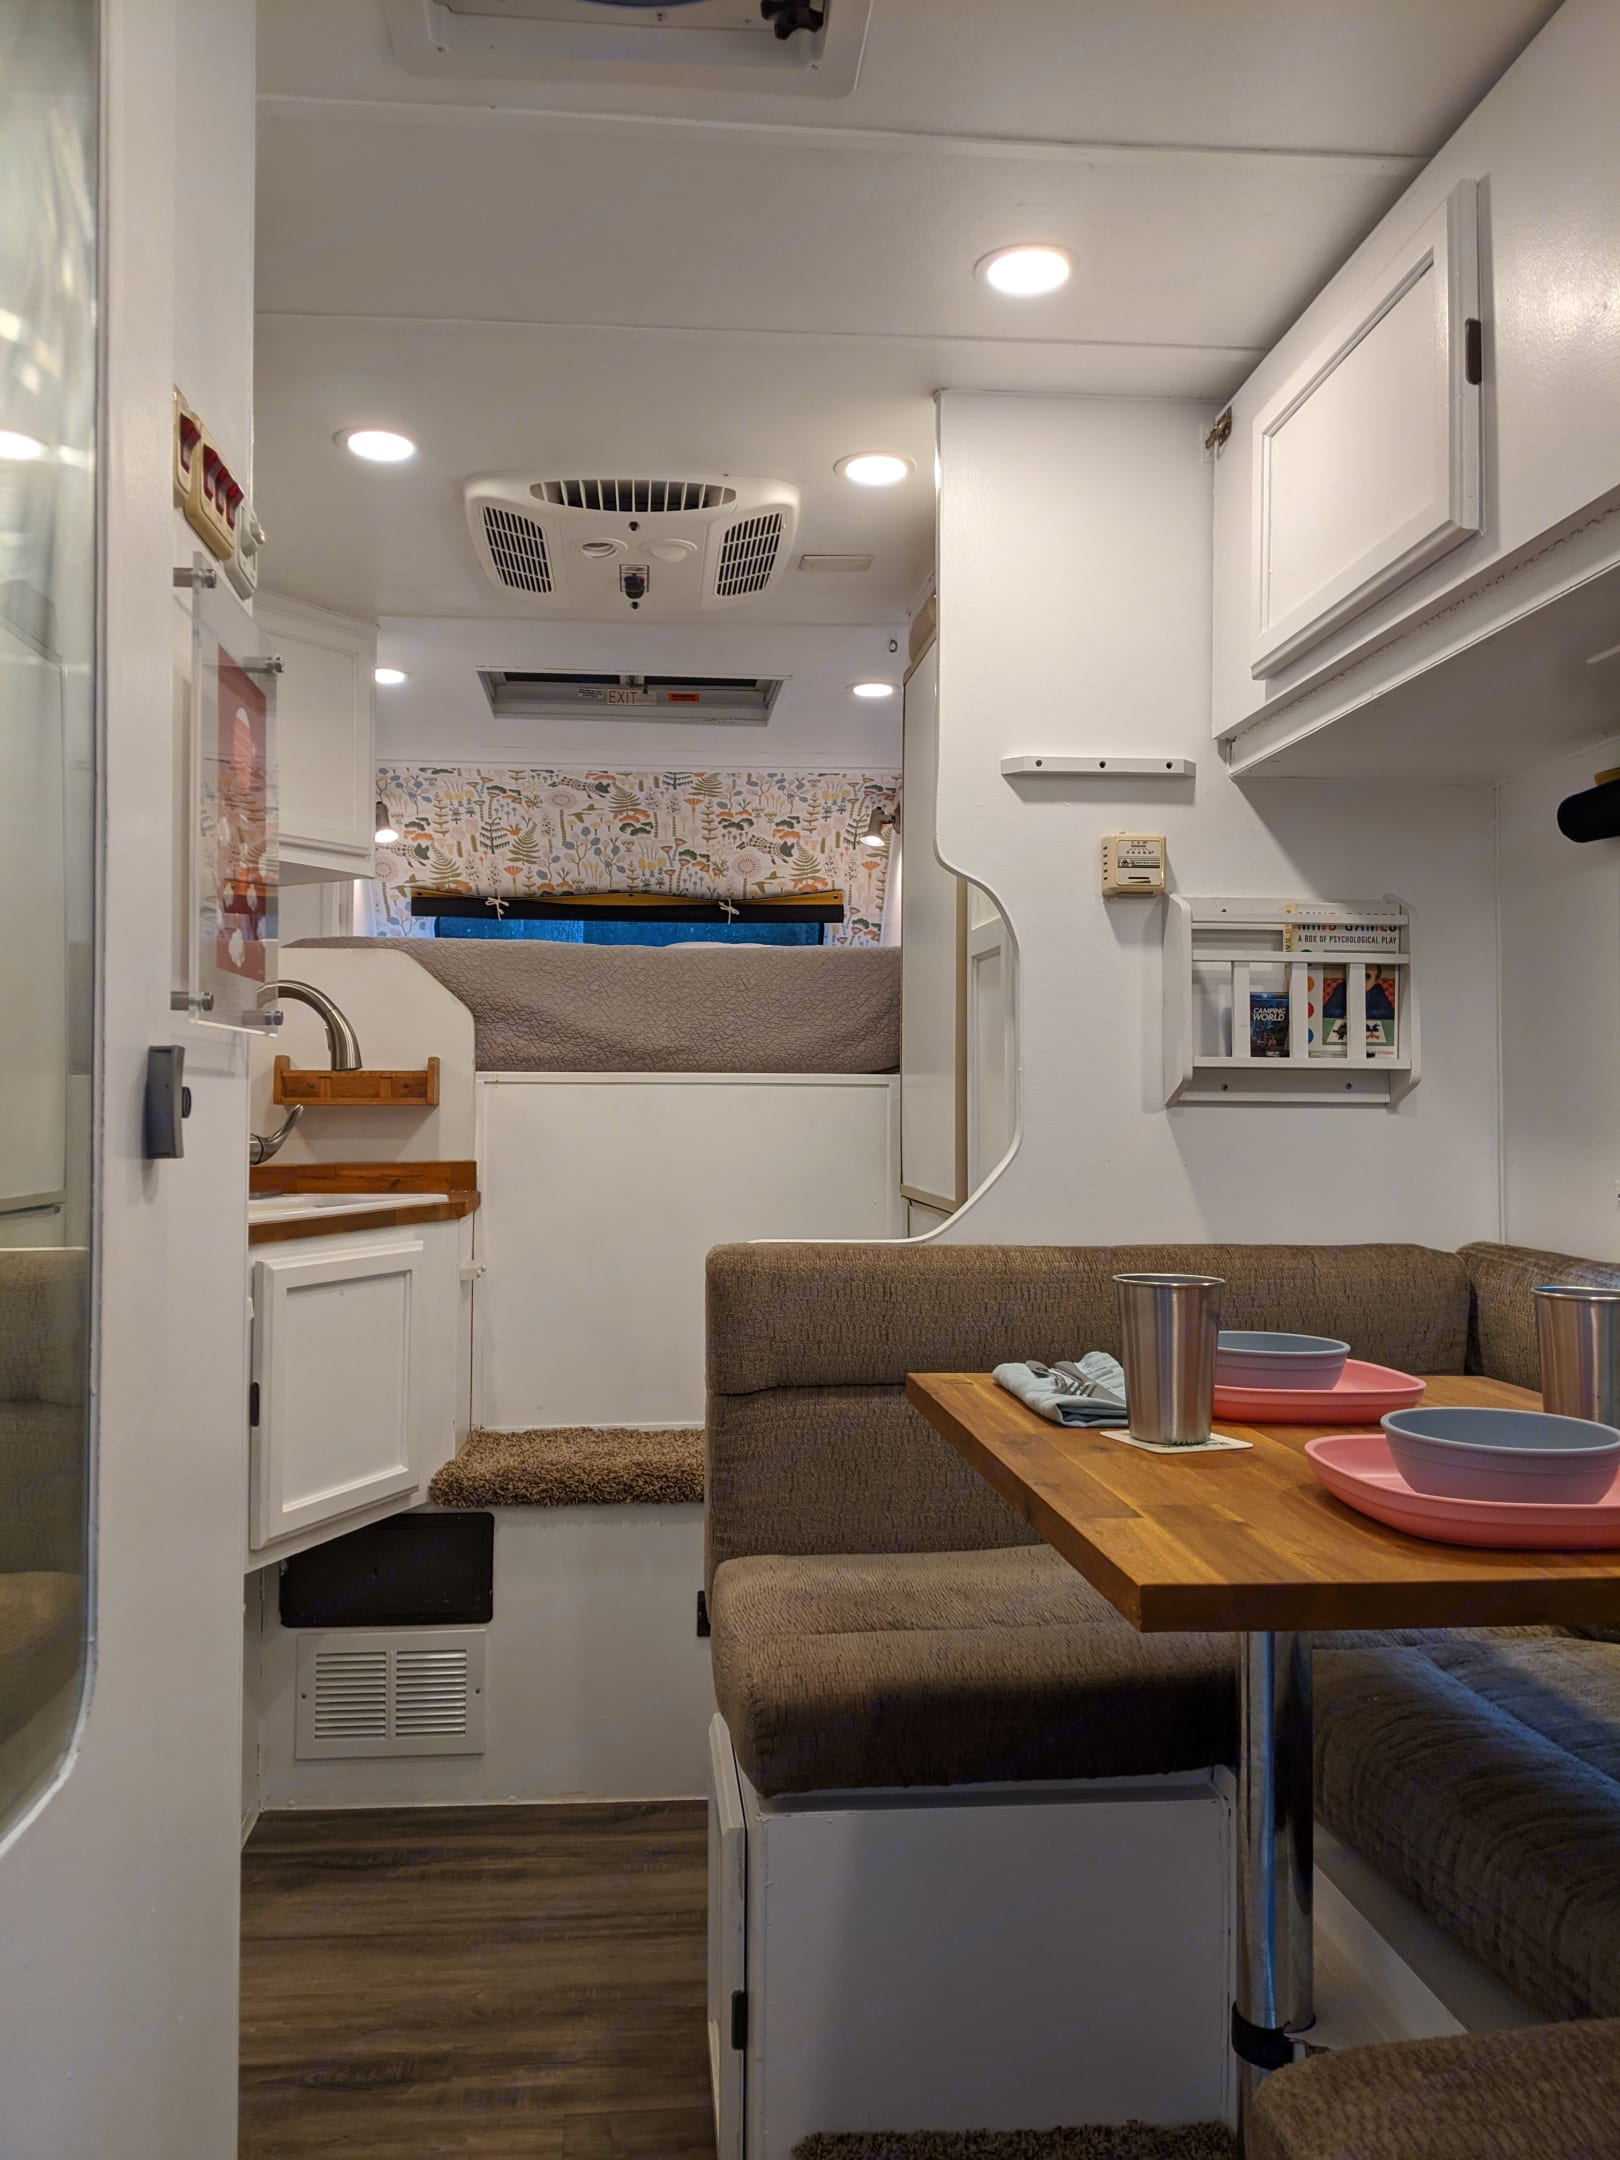 This nordic camper makes camping cozy, comfortable, and special. It is fully stocked with everything you need.. Lance 915 2006